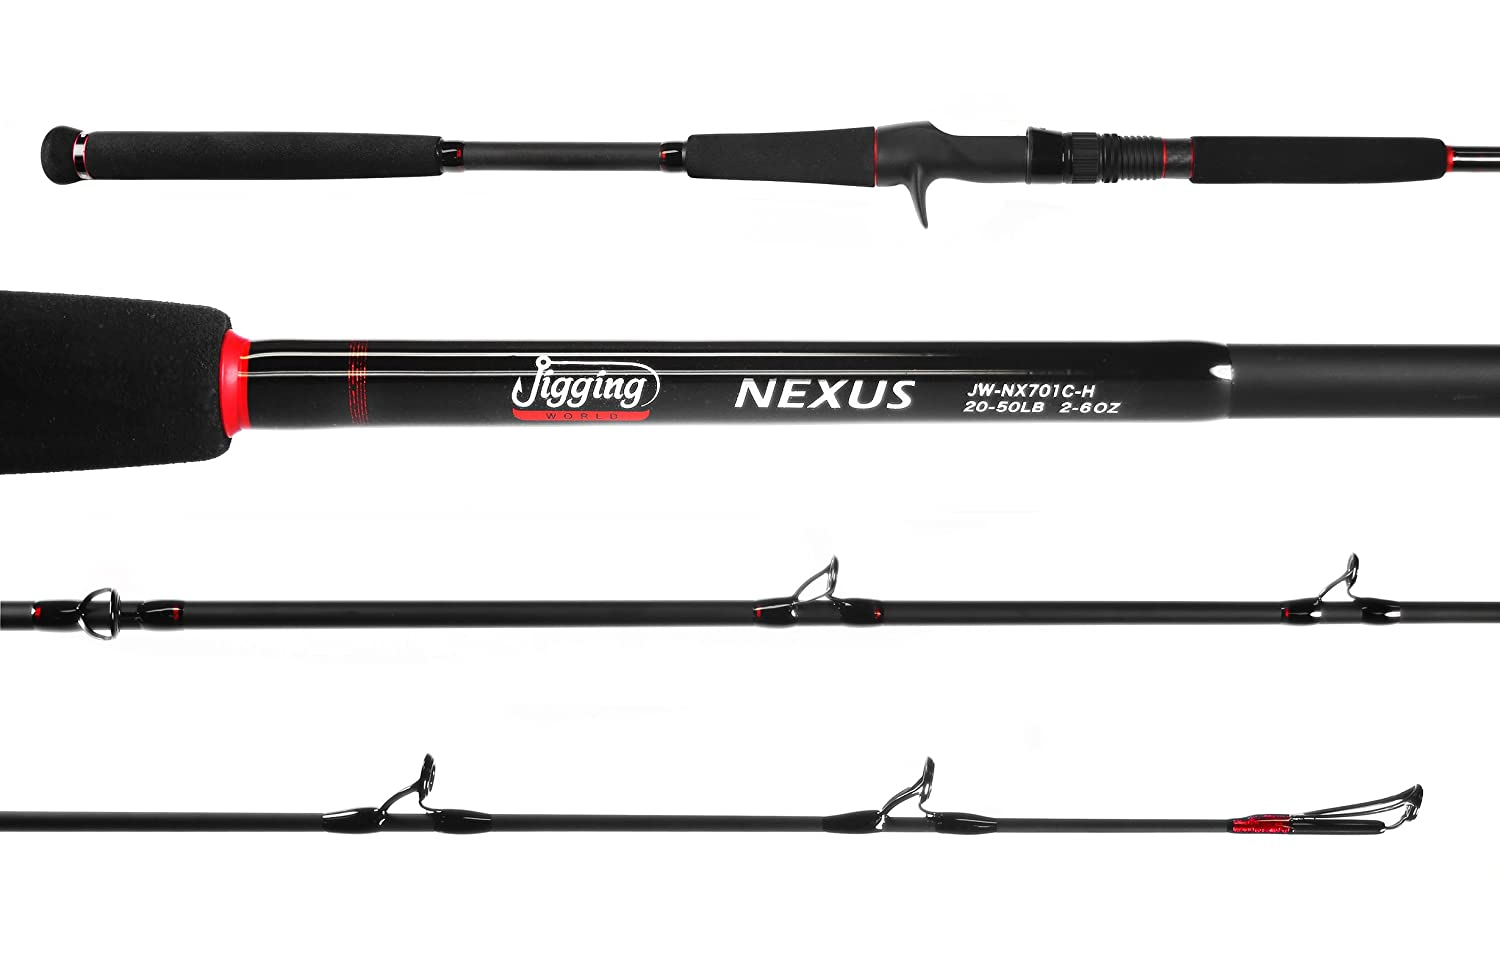 Jigging world Nexus Rods (JW-NX701C-H)